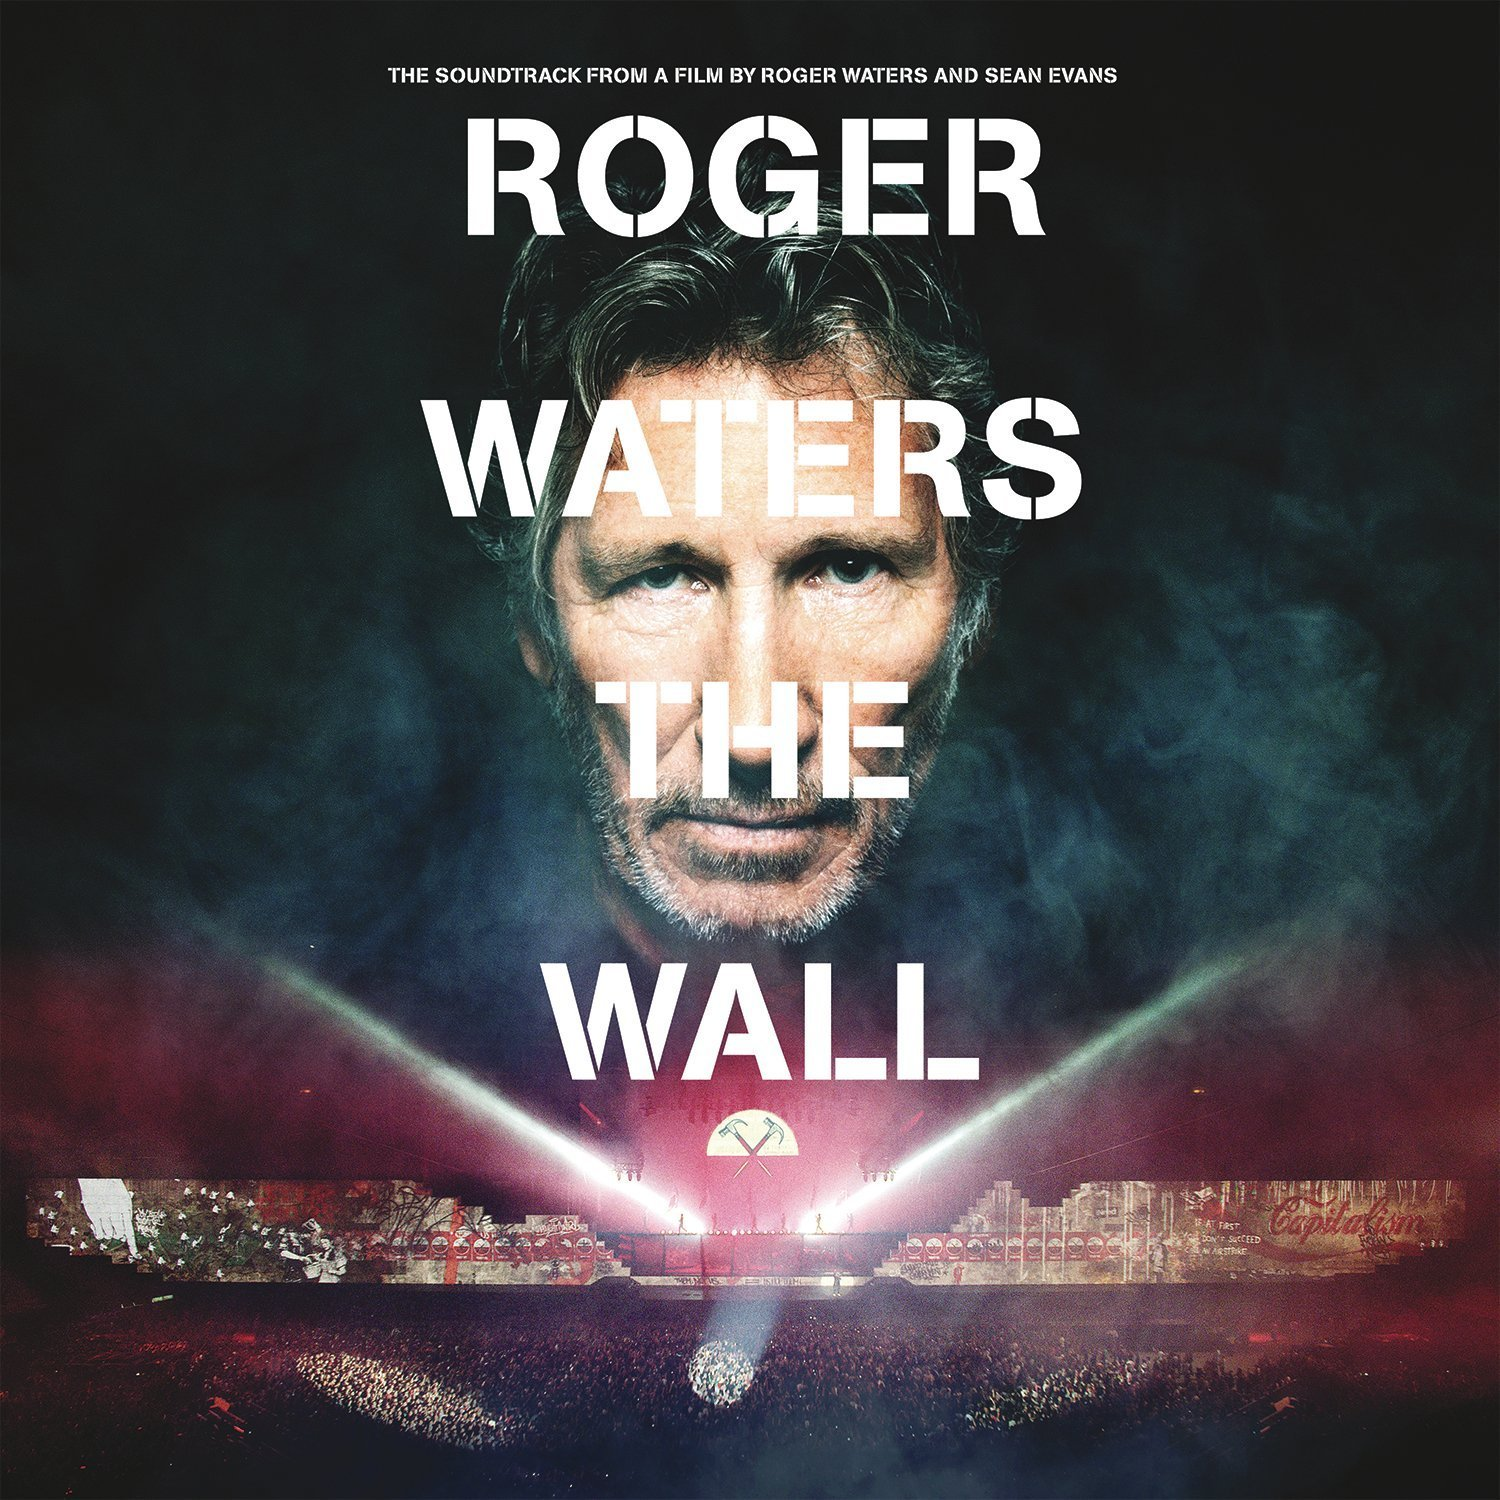 Roger WatersВиниловые пластинки<br>Виниловая пластинка<br>